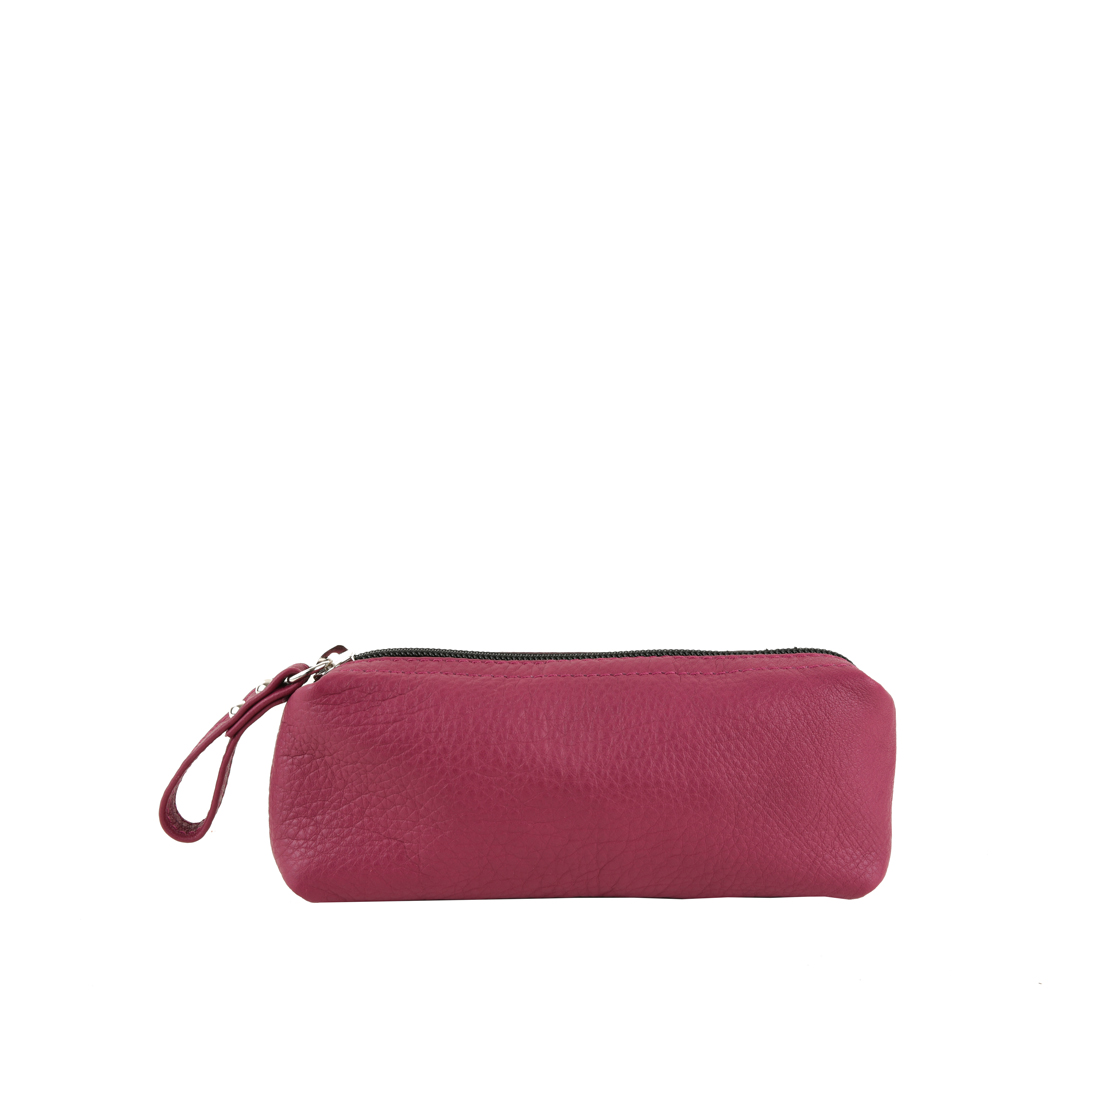 Make Up Bag In Magenta